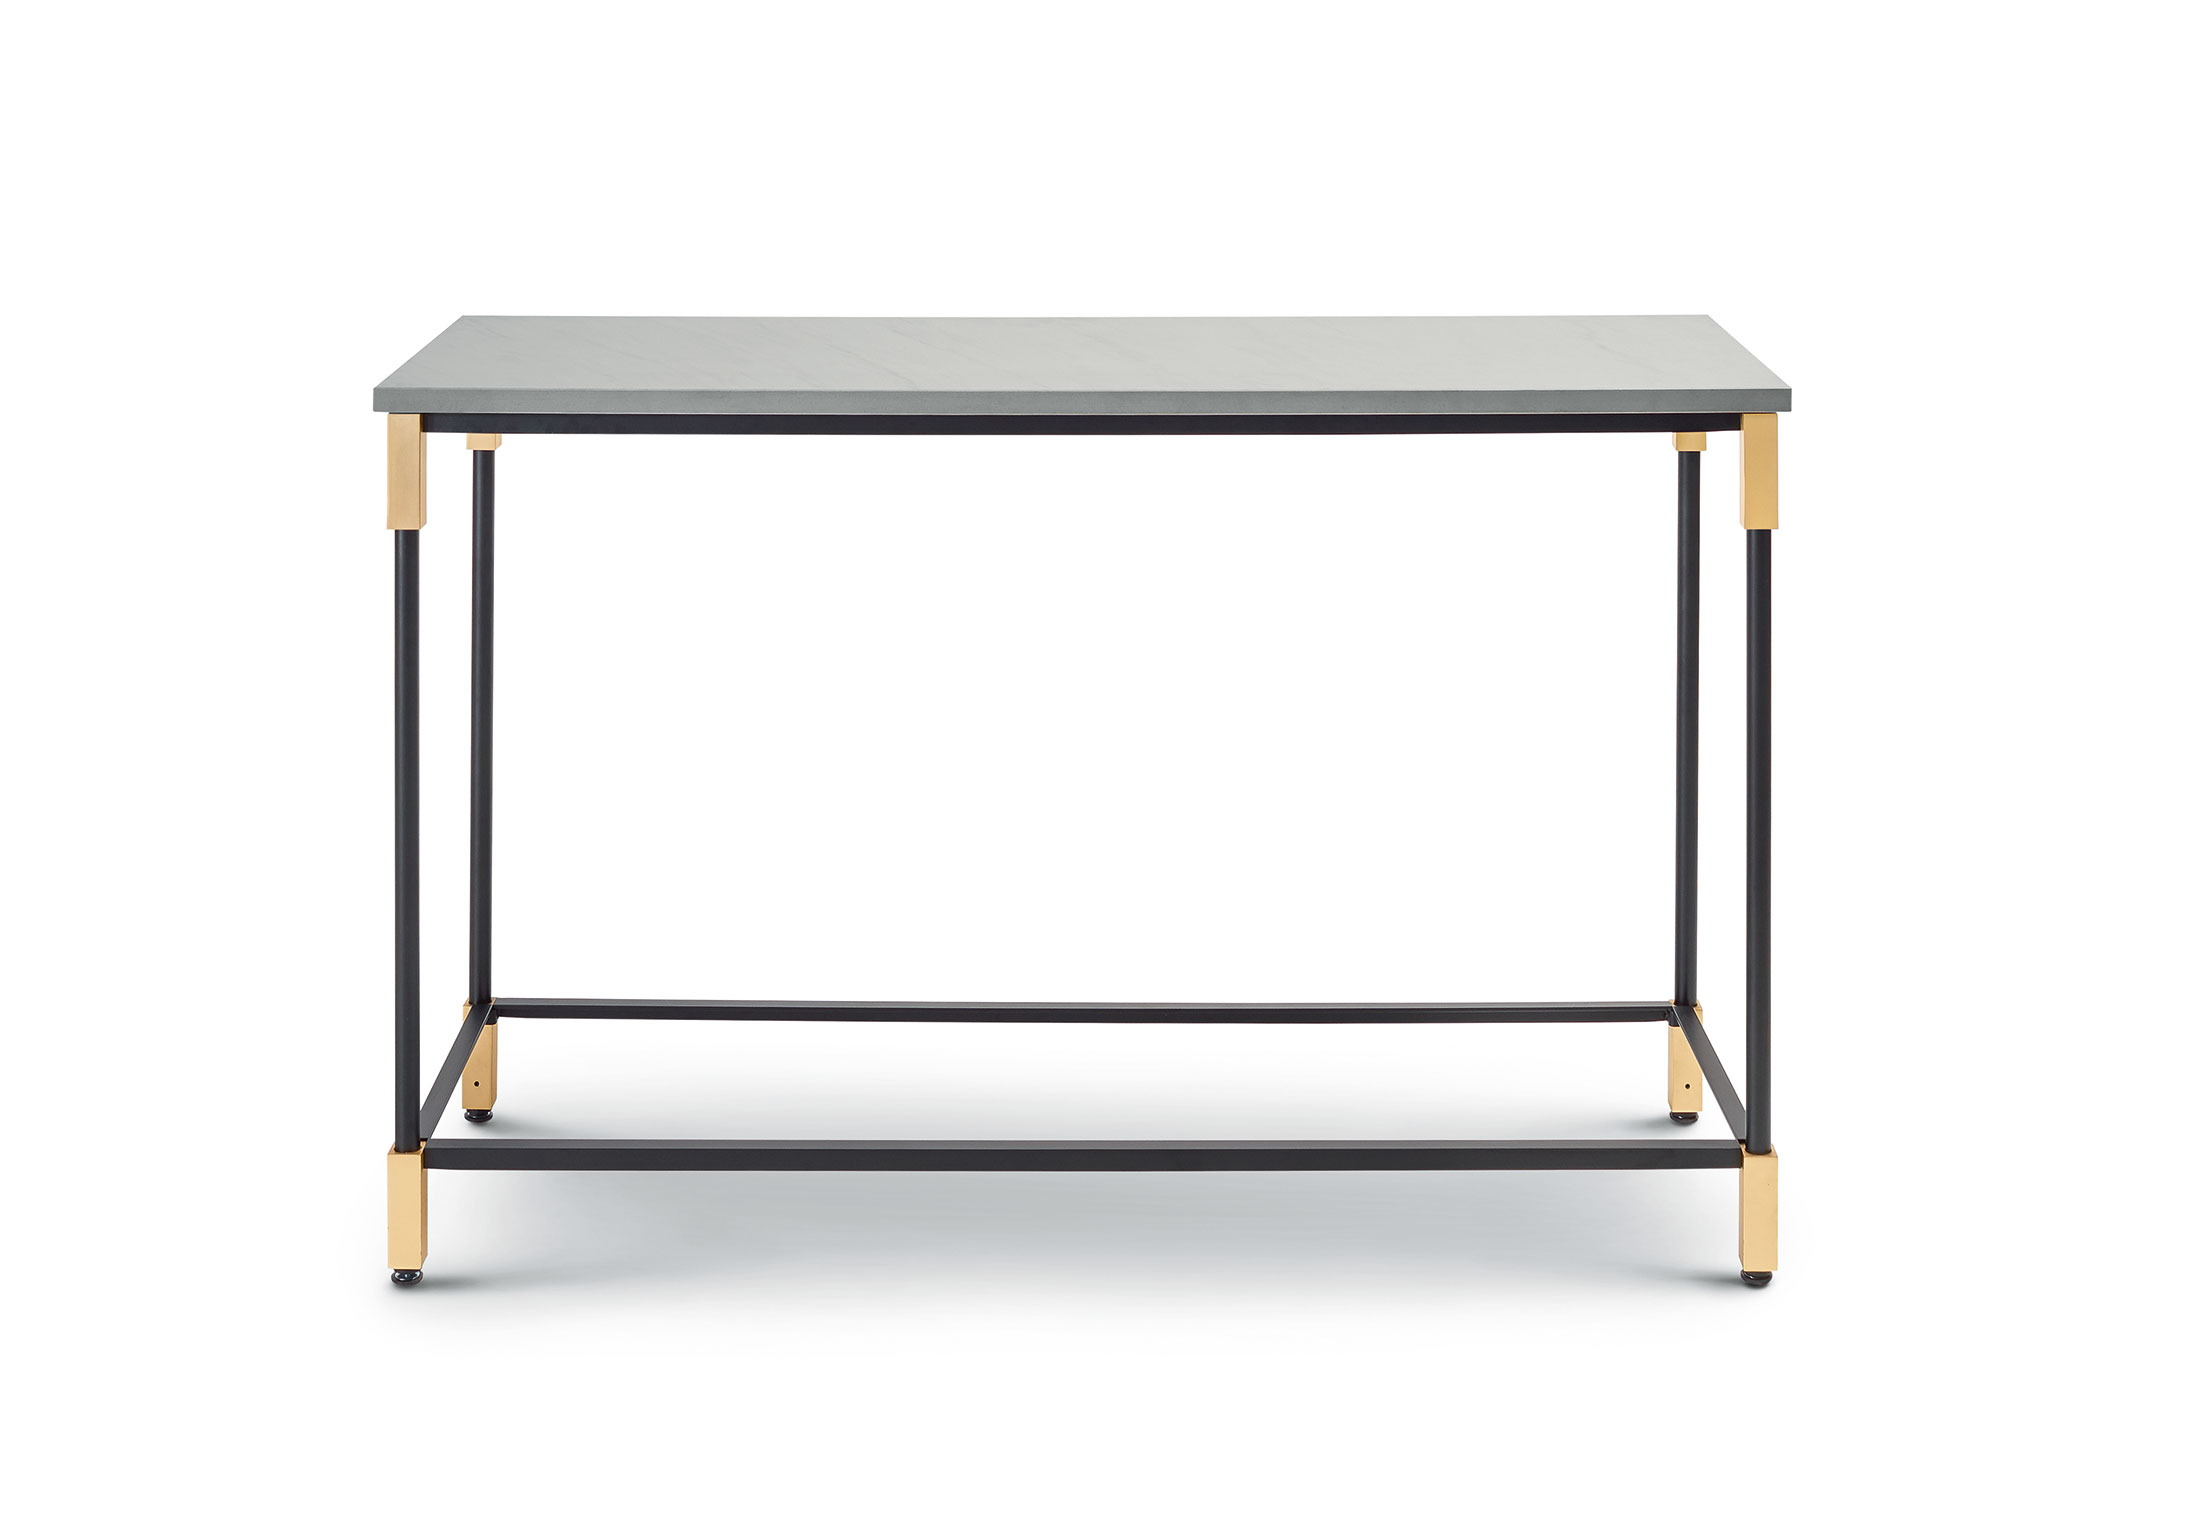 Match Console Tablearflex   Stylepark For Natural 2 Door Plasma Console Tables (View 14 of 20)